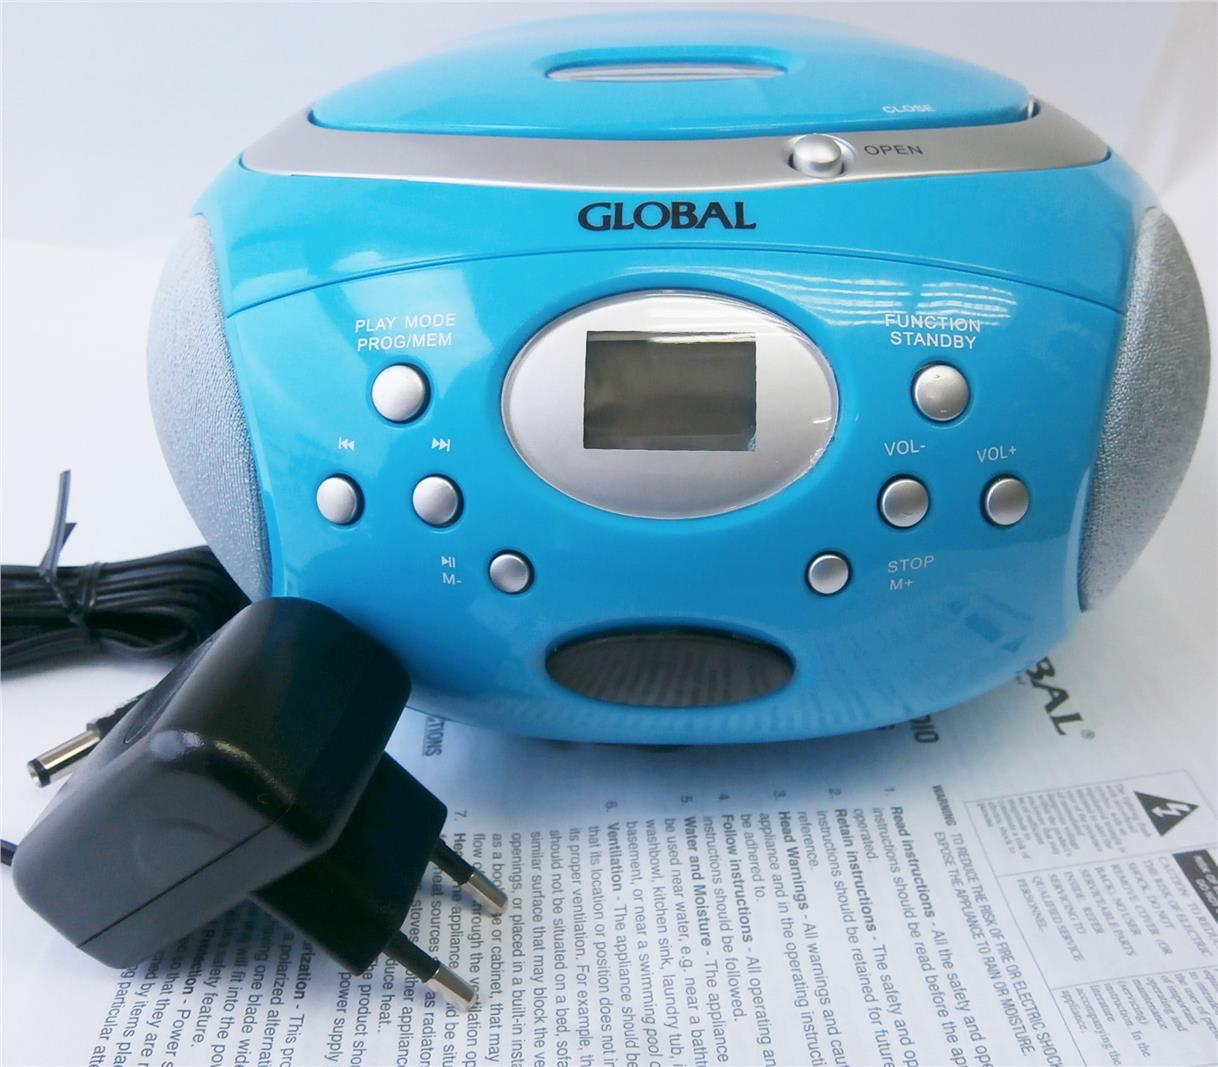 GLOBAL PORTABLE CD RADIO (GRCD 626) LIGHT BLUE COLOUR